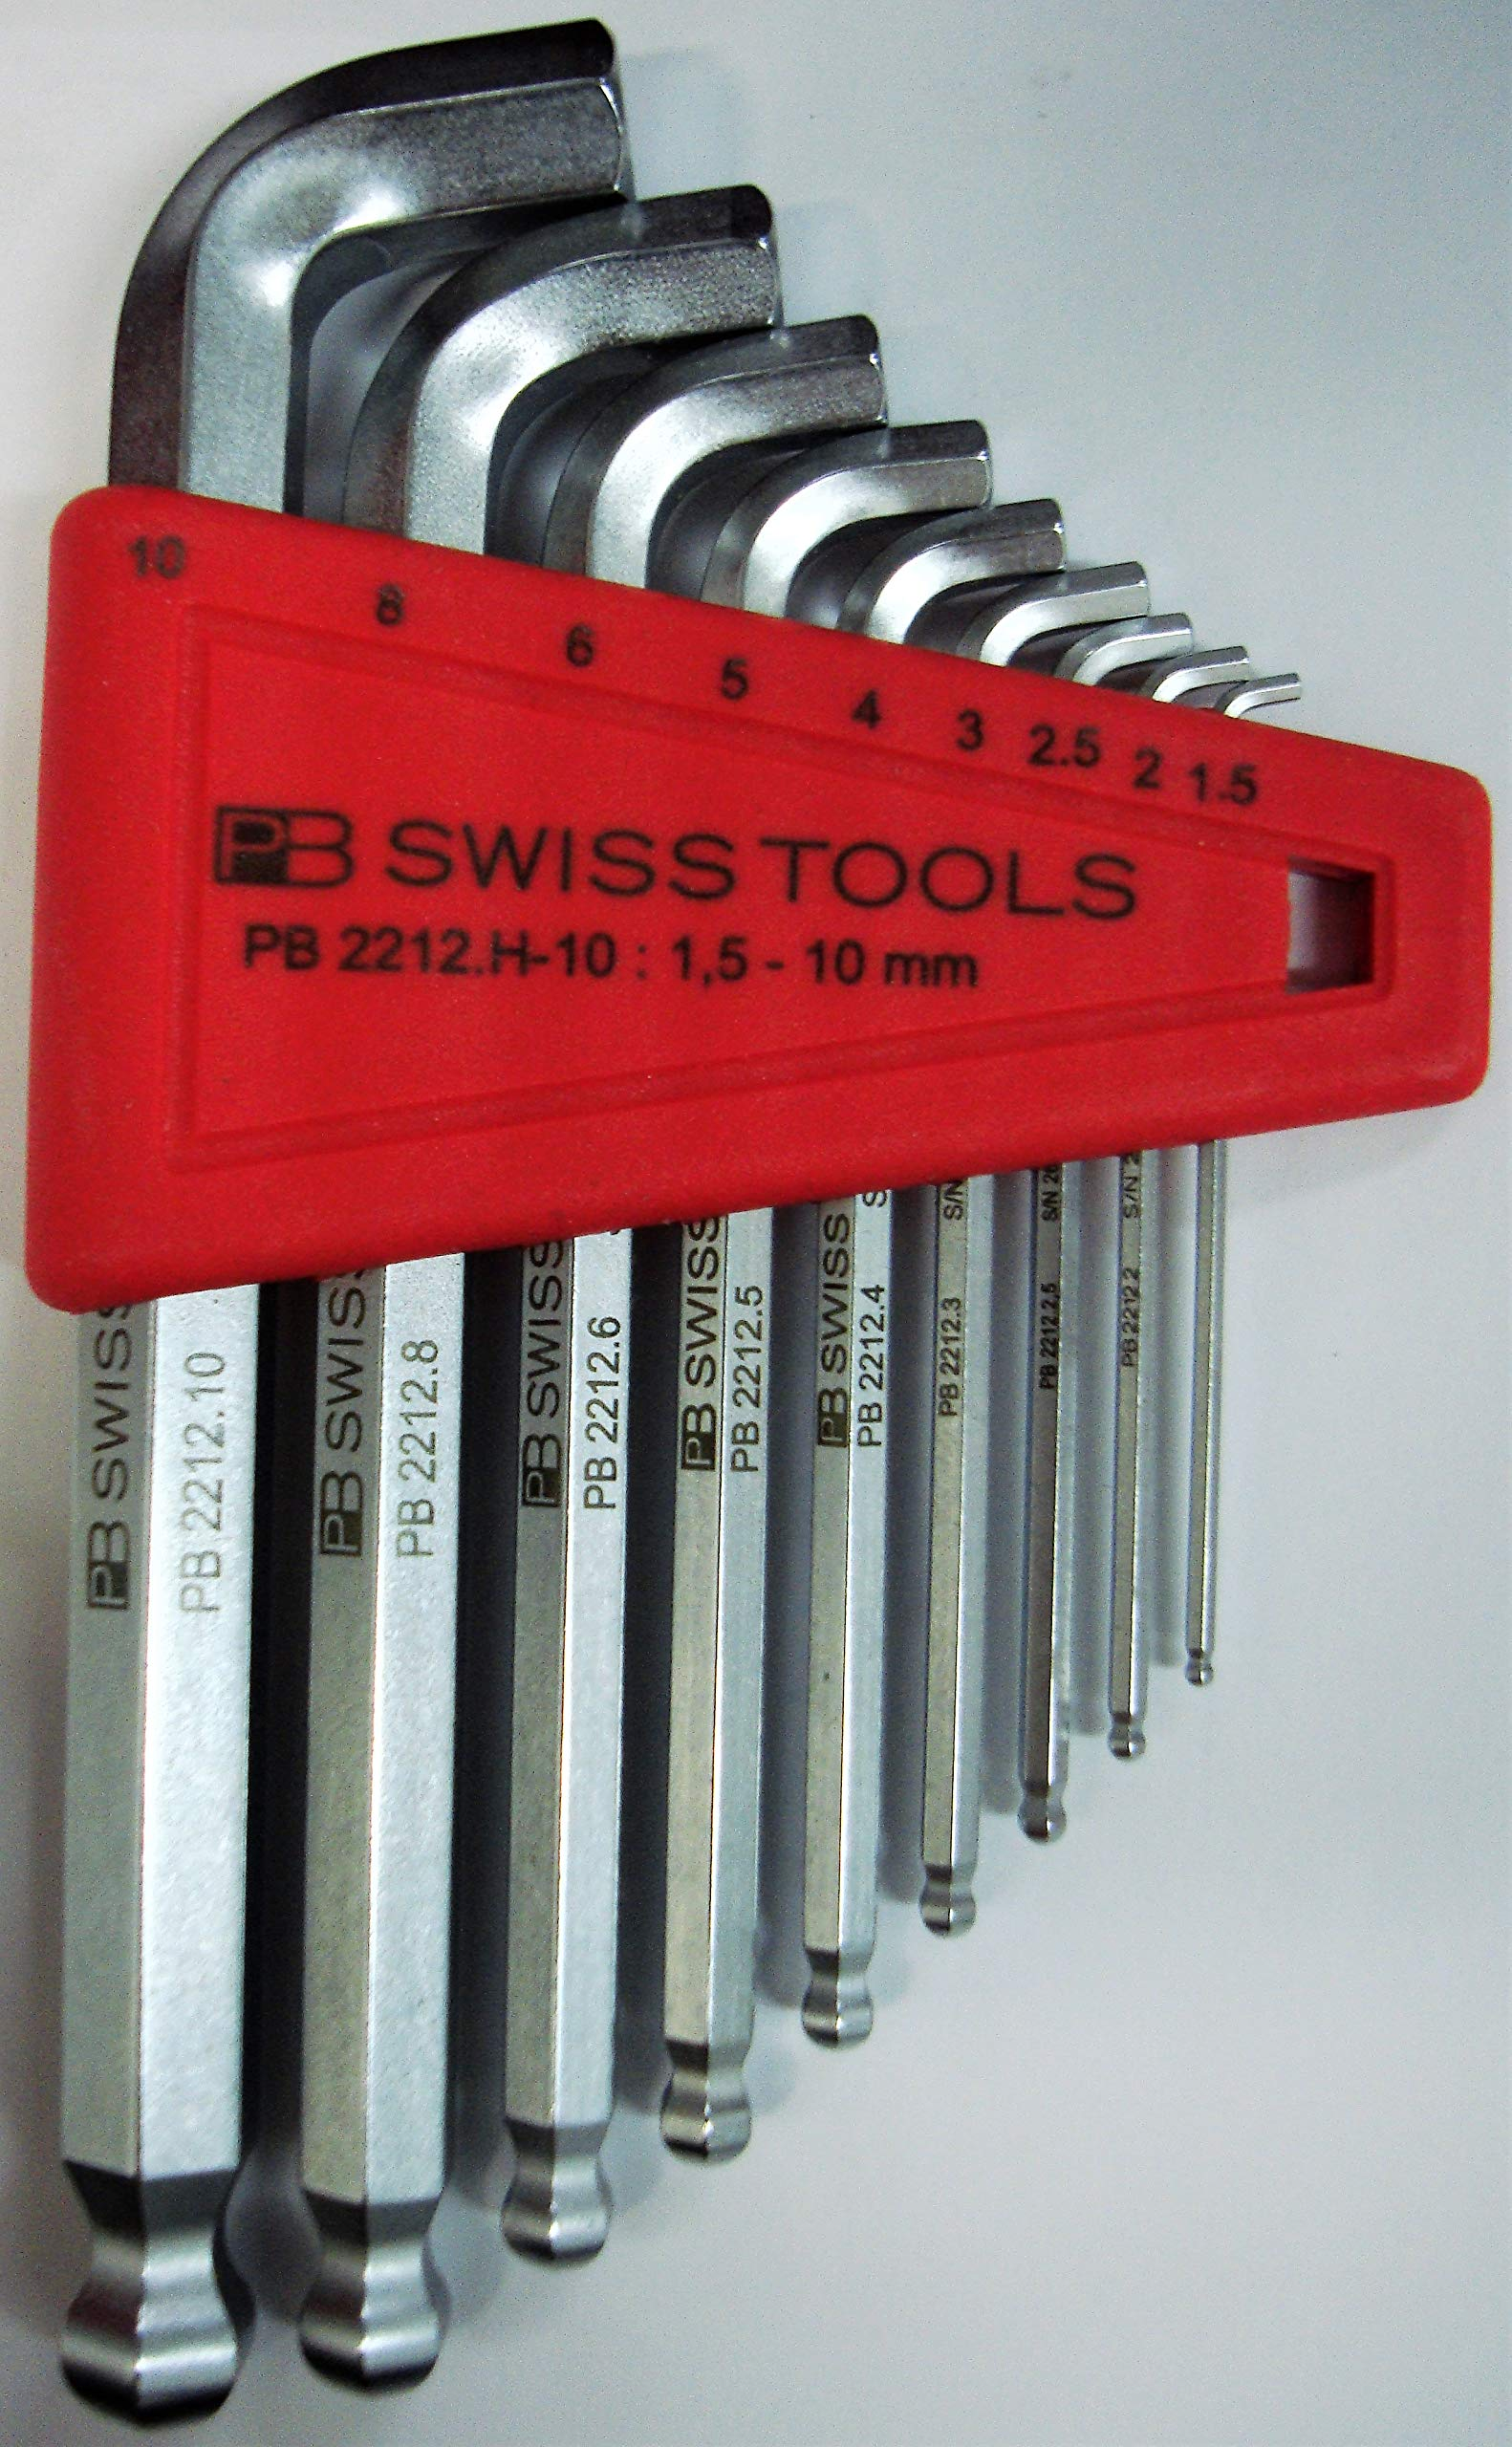 PB Swiss Tools PB 2212H-10 Hex Wrench Stubby Tip Ball-End Set, 58-60HRC Hardness